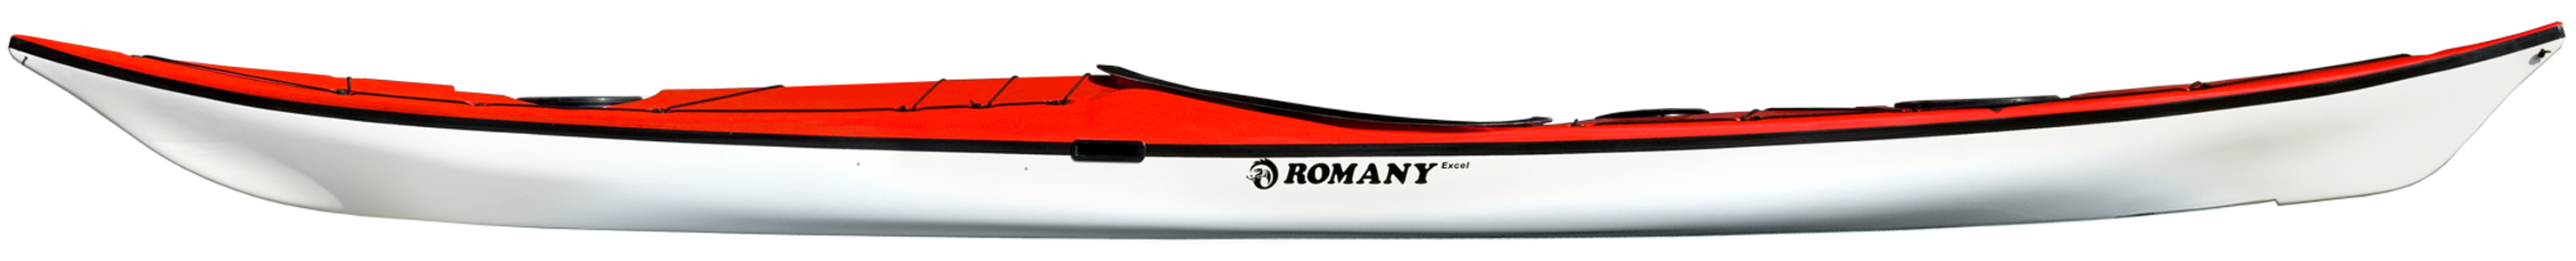 Romany Side View